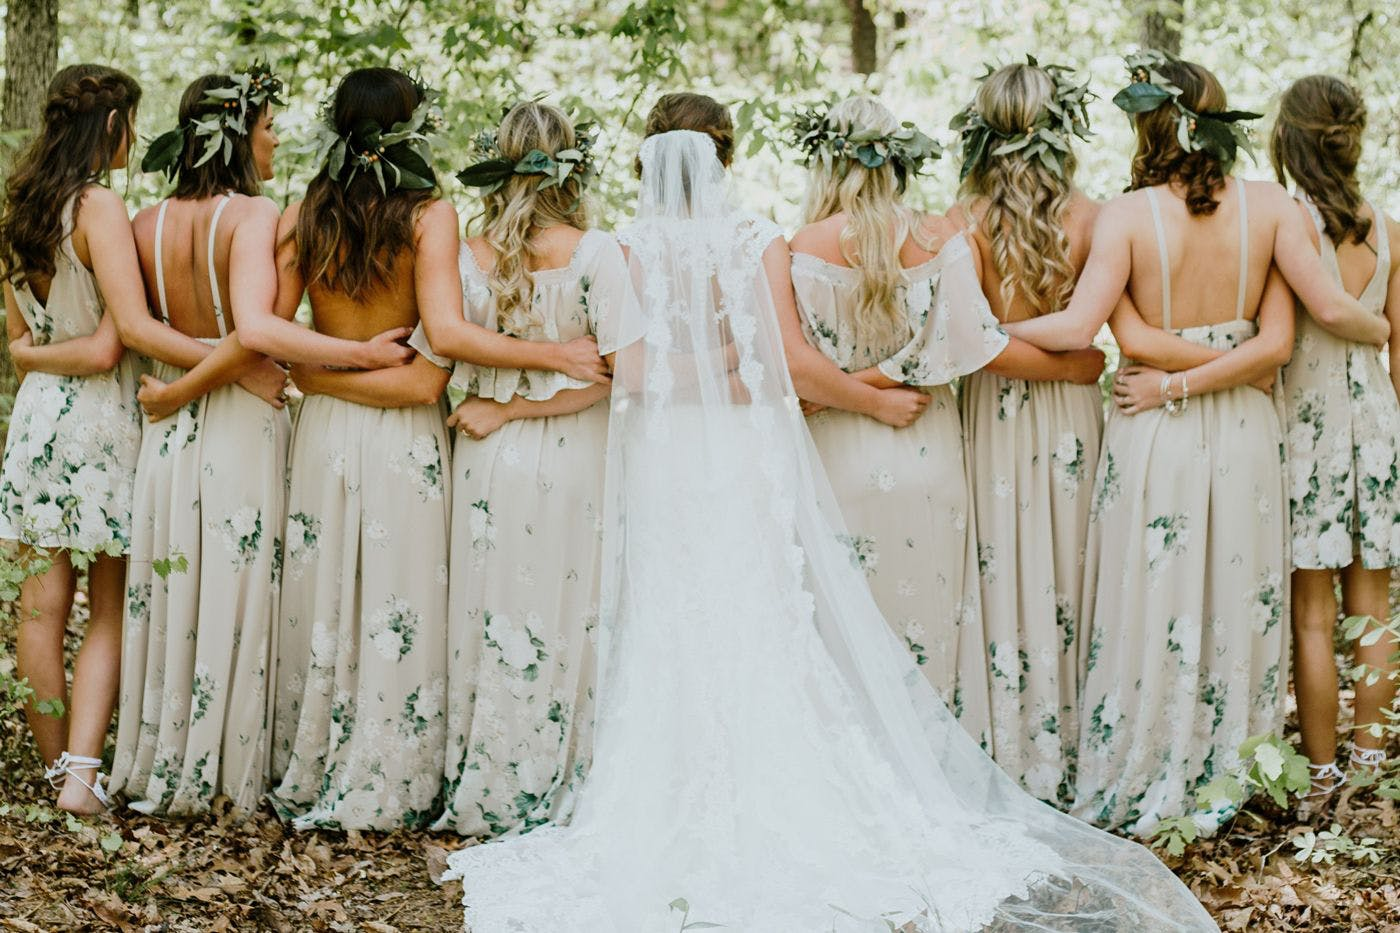 2019 Bridesmaids Dress Trends